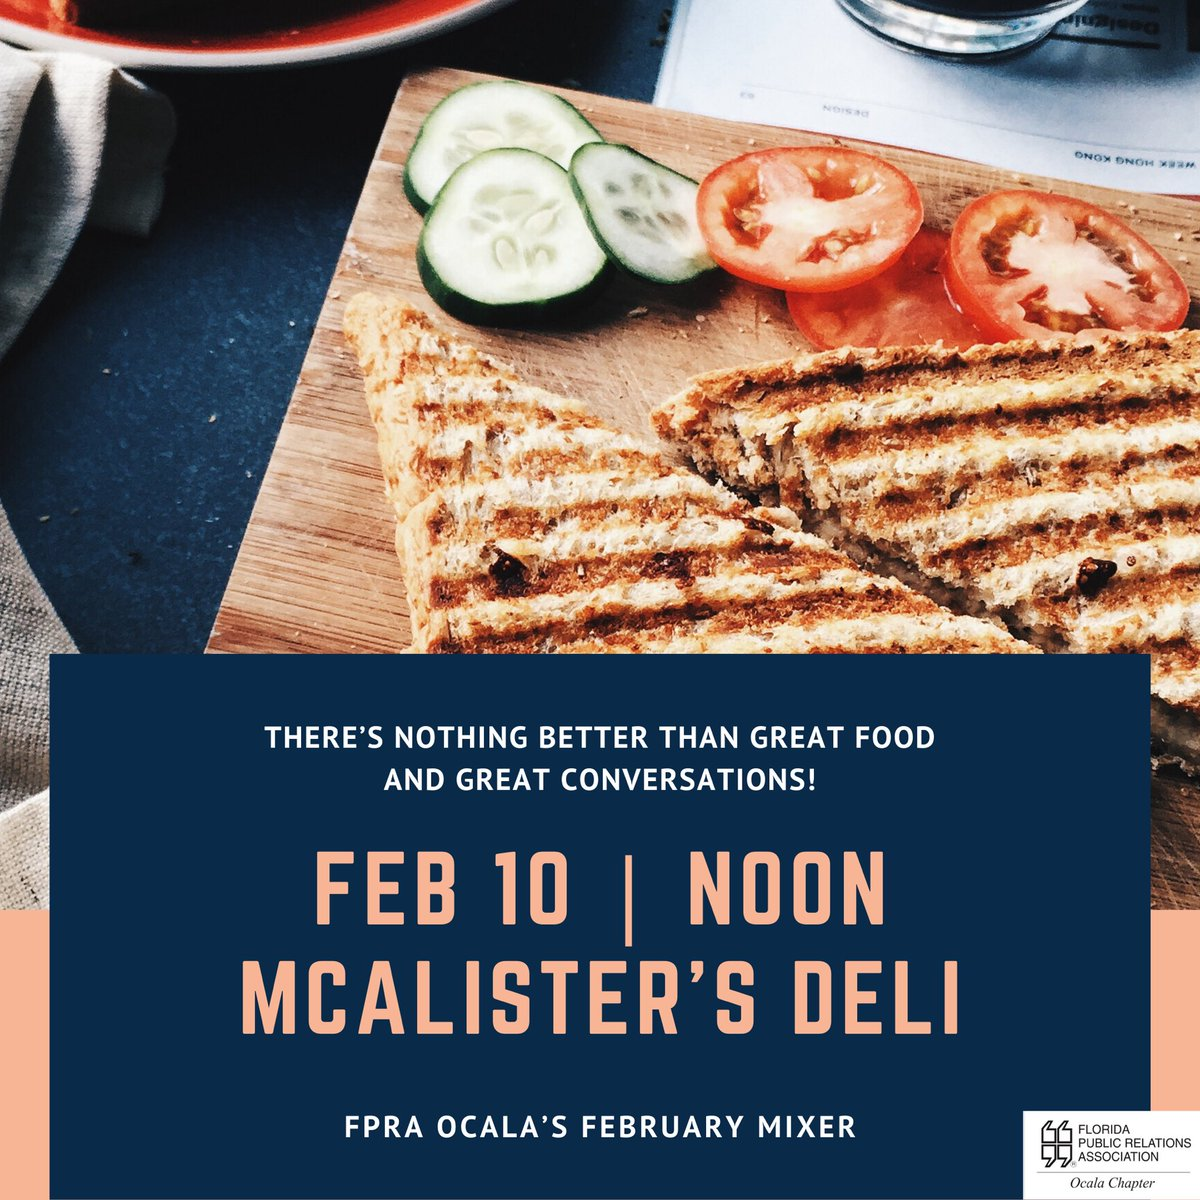 🚨Lunch Date Alert🚨 Join us for awesome food and convo at our next monthly mixer.  ⬇️  McAlister's Deli - Feb. 10 - noon - #monthlymixer #TransformFPRA #PurposeFPRA #FPRA #networking